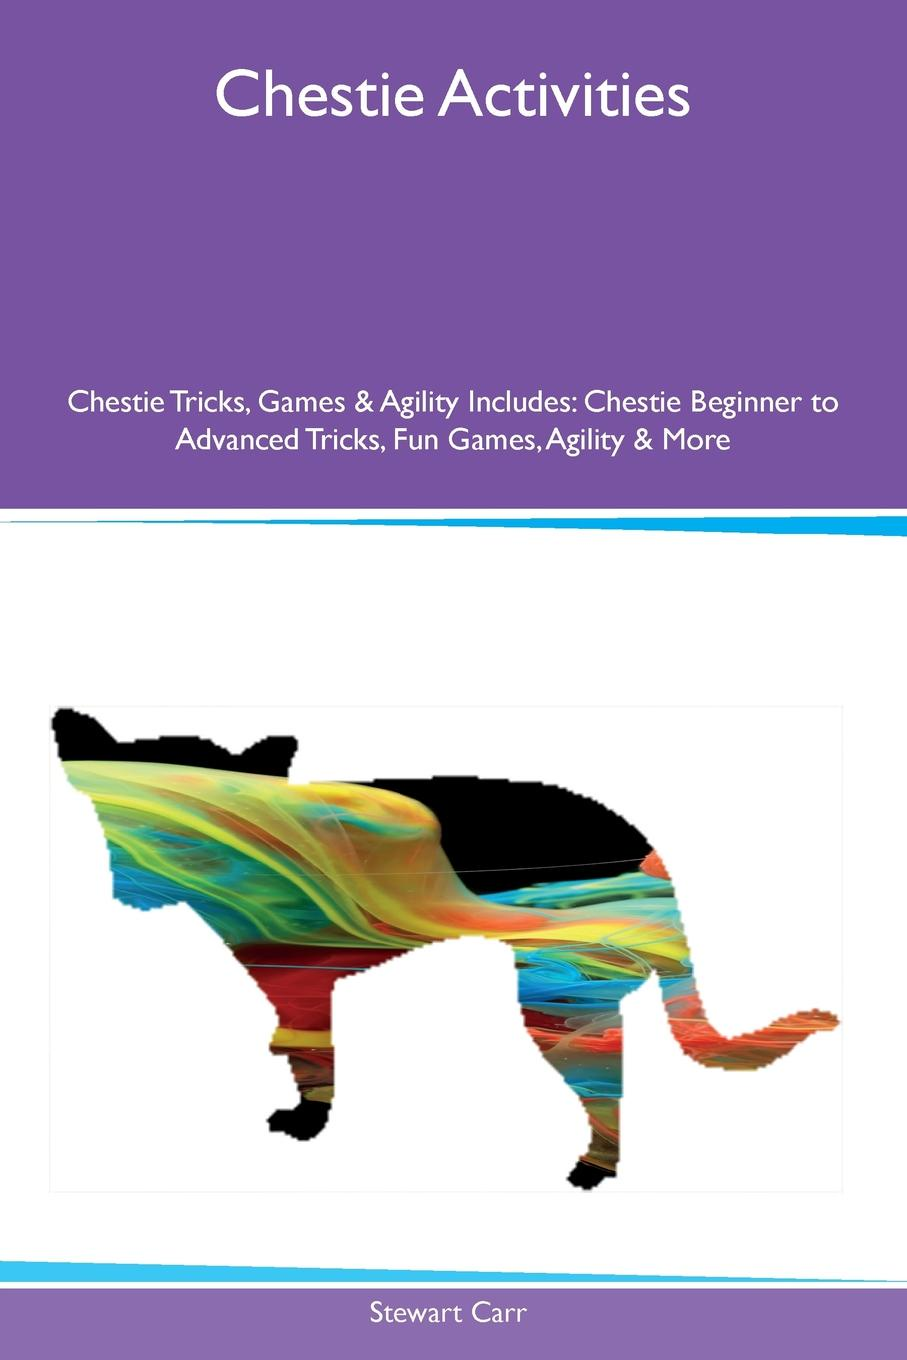 Chestie Activities Chestie Tricks, Games & Agility Includes. Chestie Beginner to Advanced Tricks, Fun Games, Agility & More